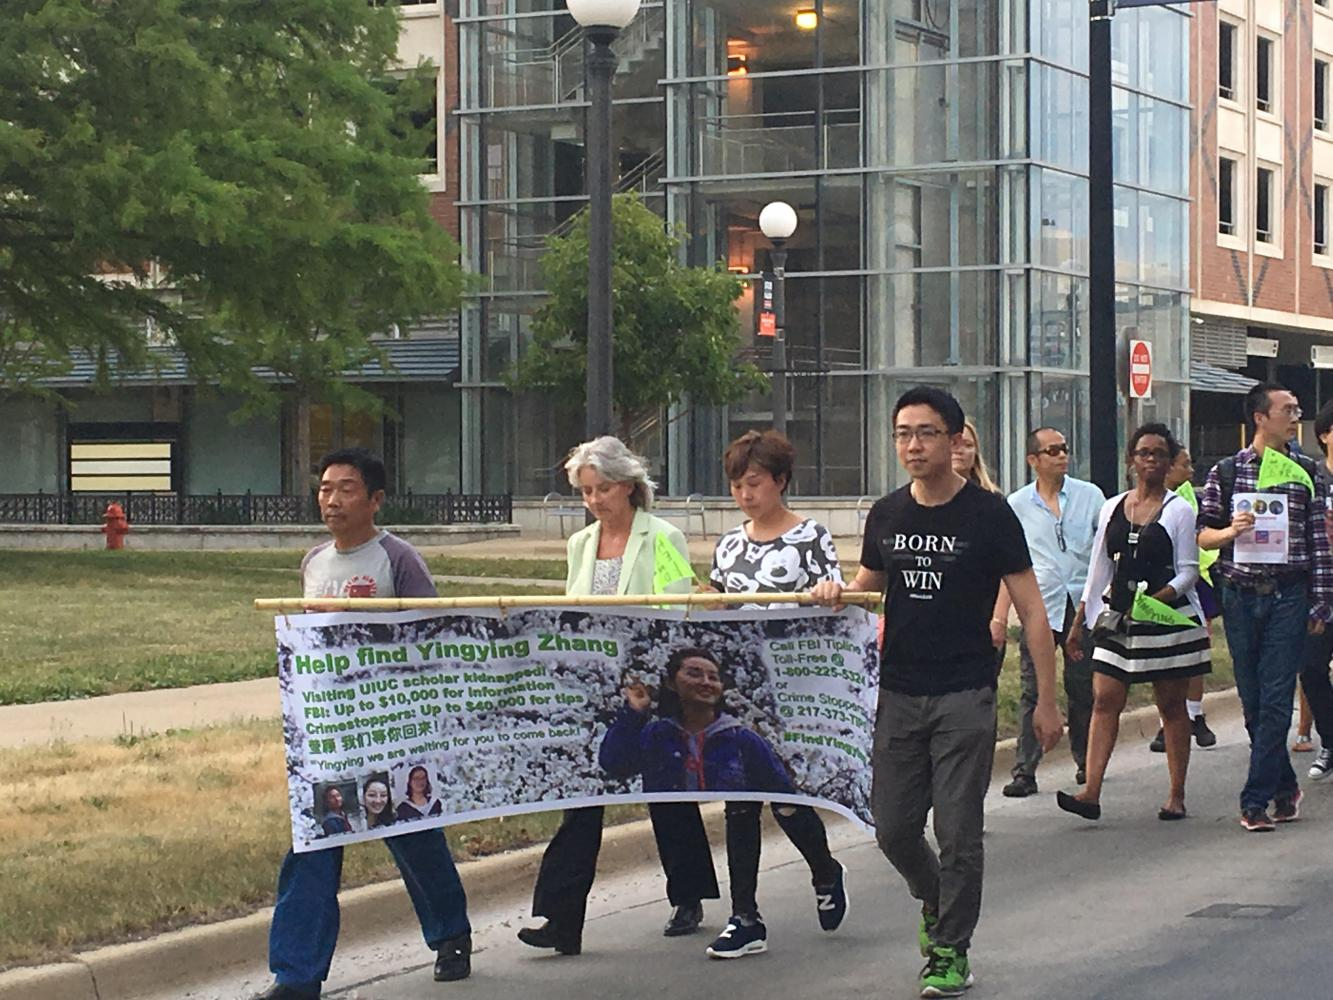 Community members walked to support Yingying Zhang, a Chinese visiting scholar who went missing on July 9. Alleged kidnapper Brendt Christensen appeared in court today and was not granted bond.